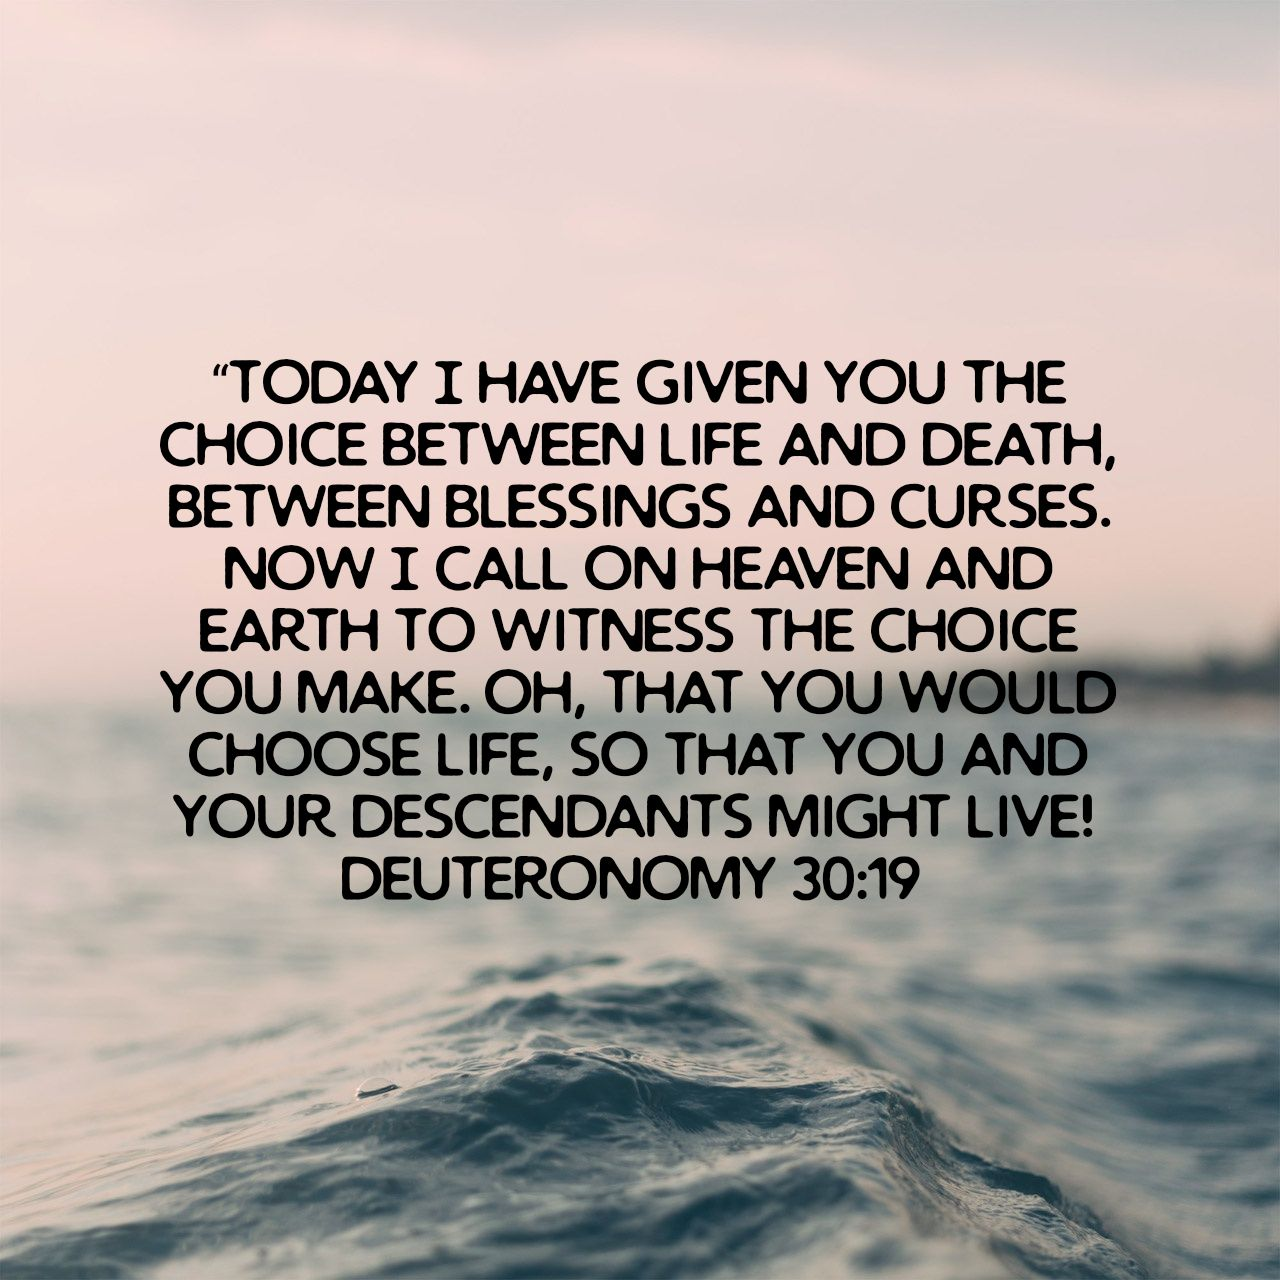 """Today I have given you the choice between life and death, between blessings and curses. Now I call on heaven and earth to witness the choice you make. Oh, that you would choose life, so that you and your descendants might live! - Deuteronomy 30:19 NLT"